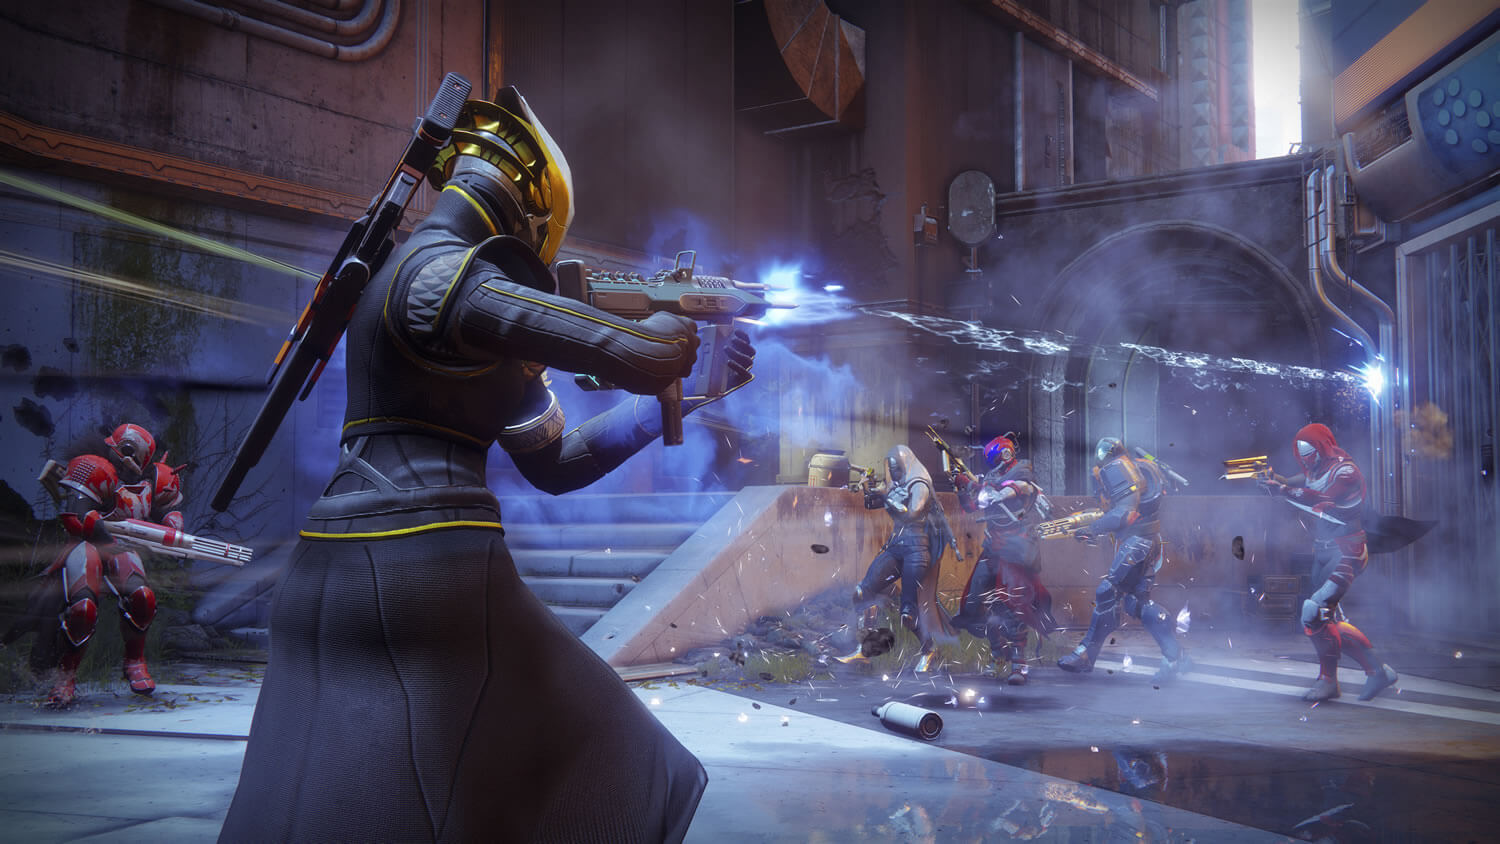 Destiny 2 Benchmarked: 30 GPUs Tested - TechSpot